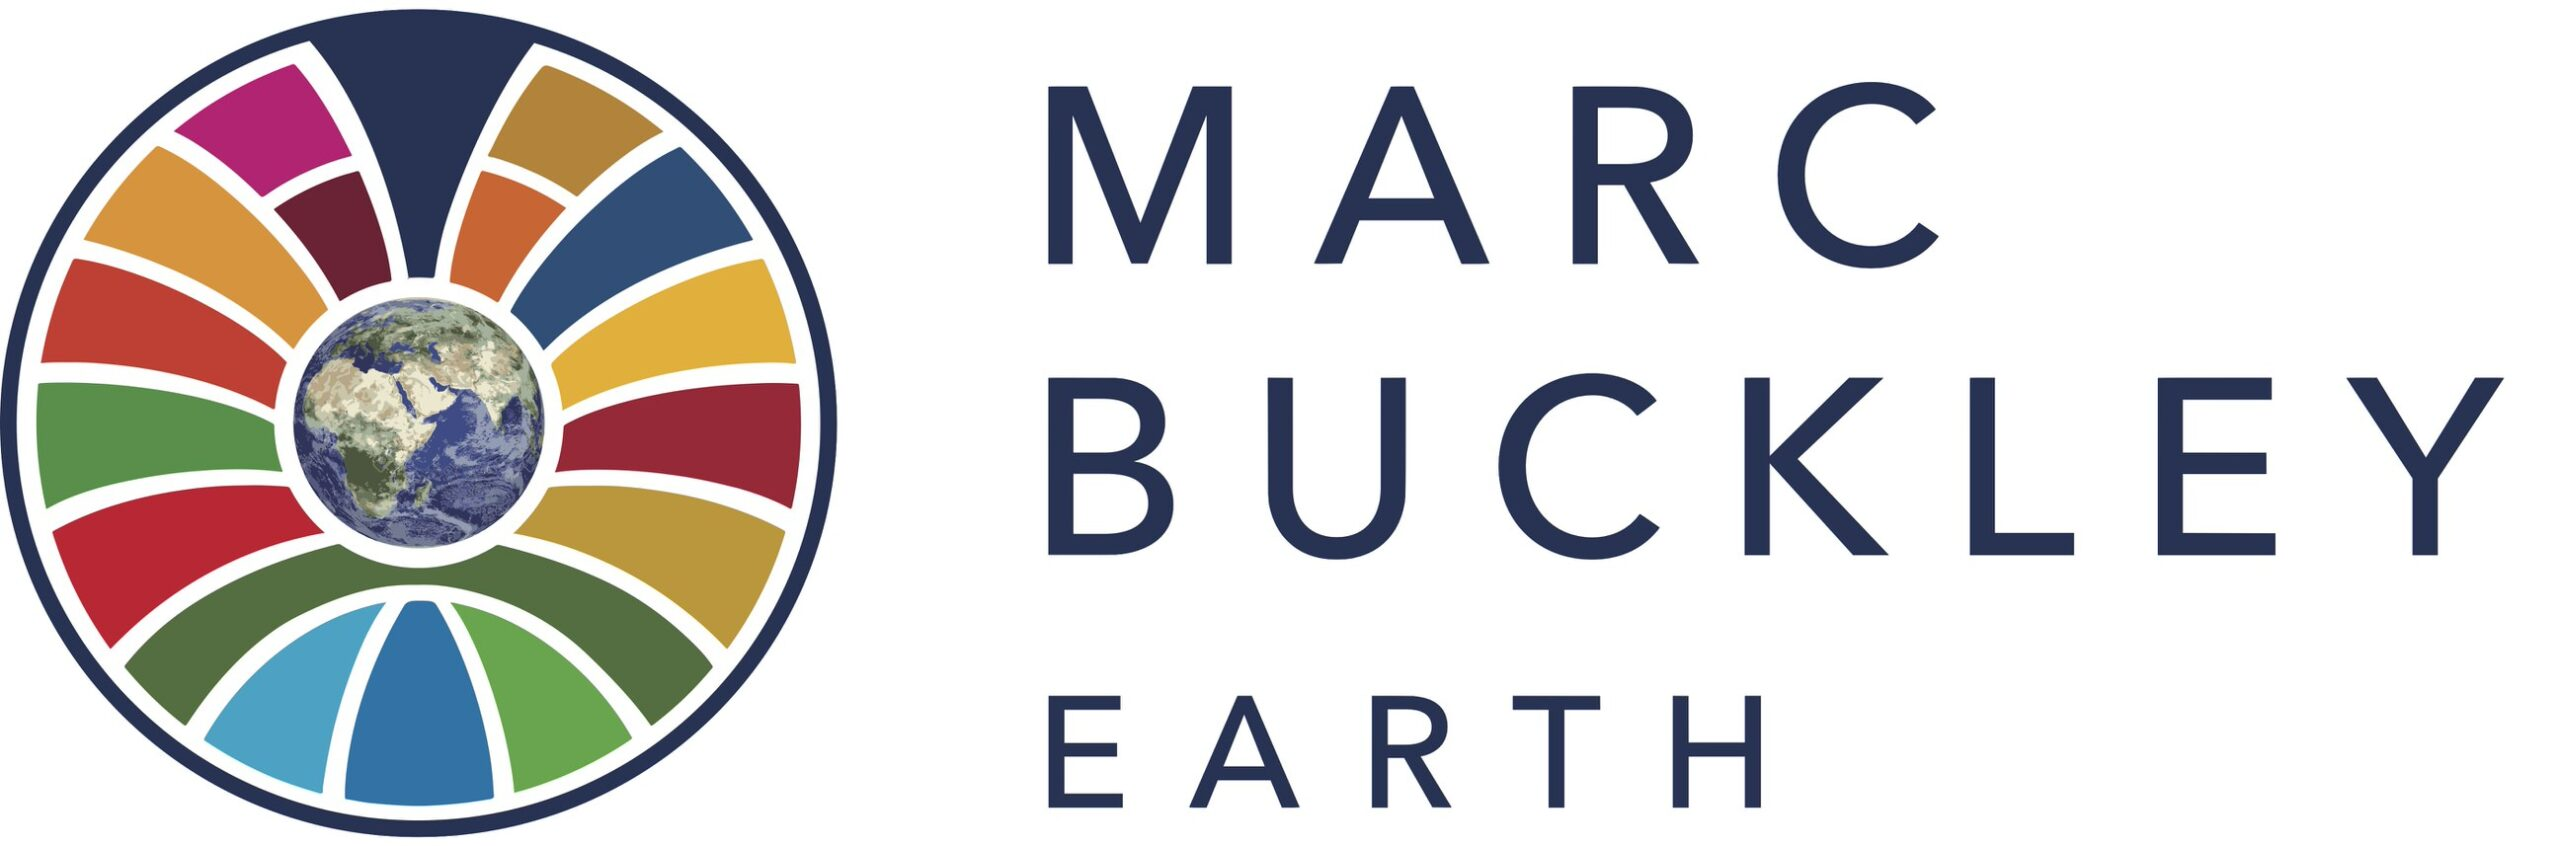 Marc Buckley Earth